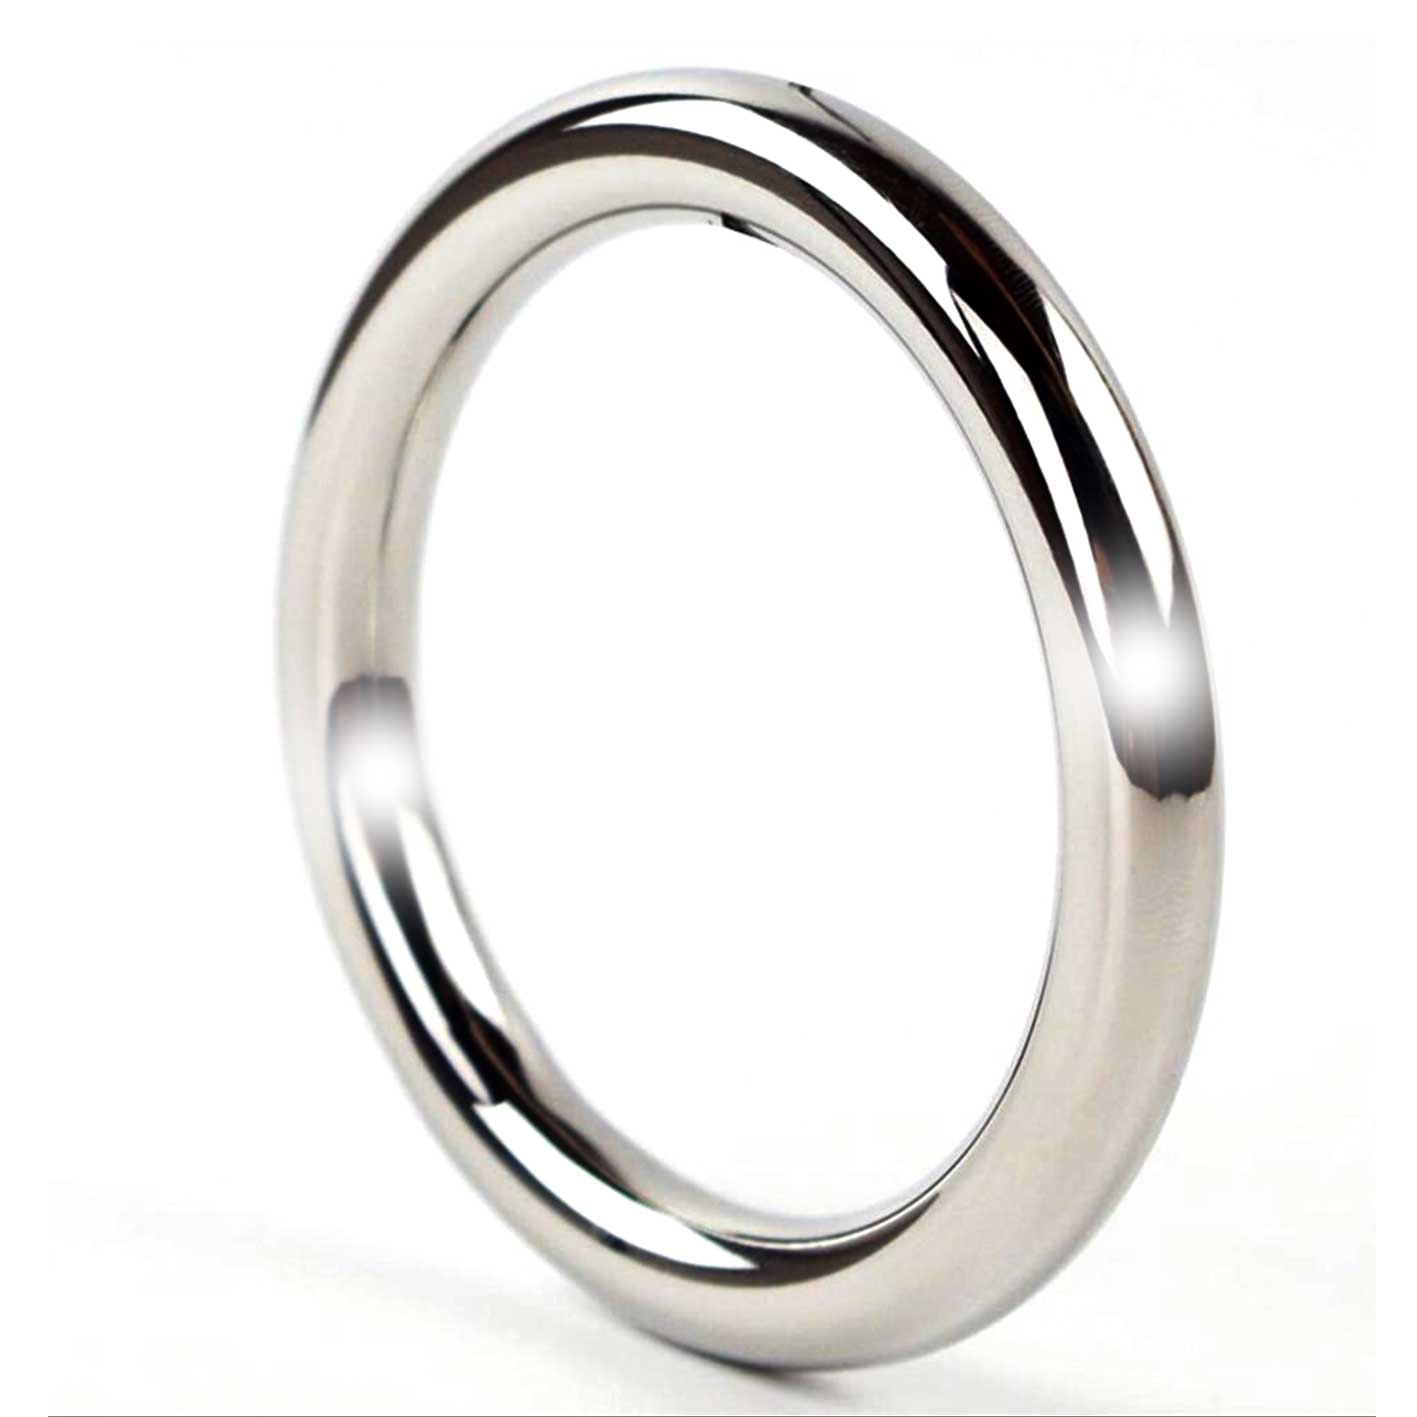 Cmd stainless steel cock rings